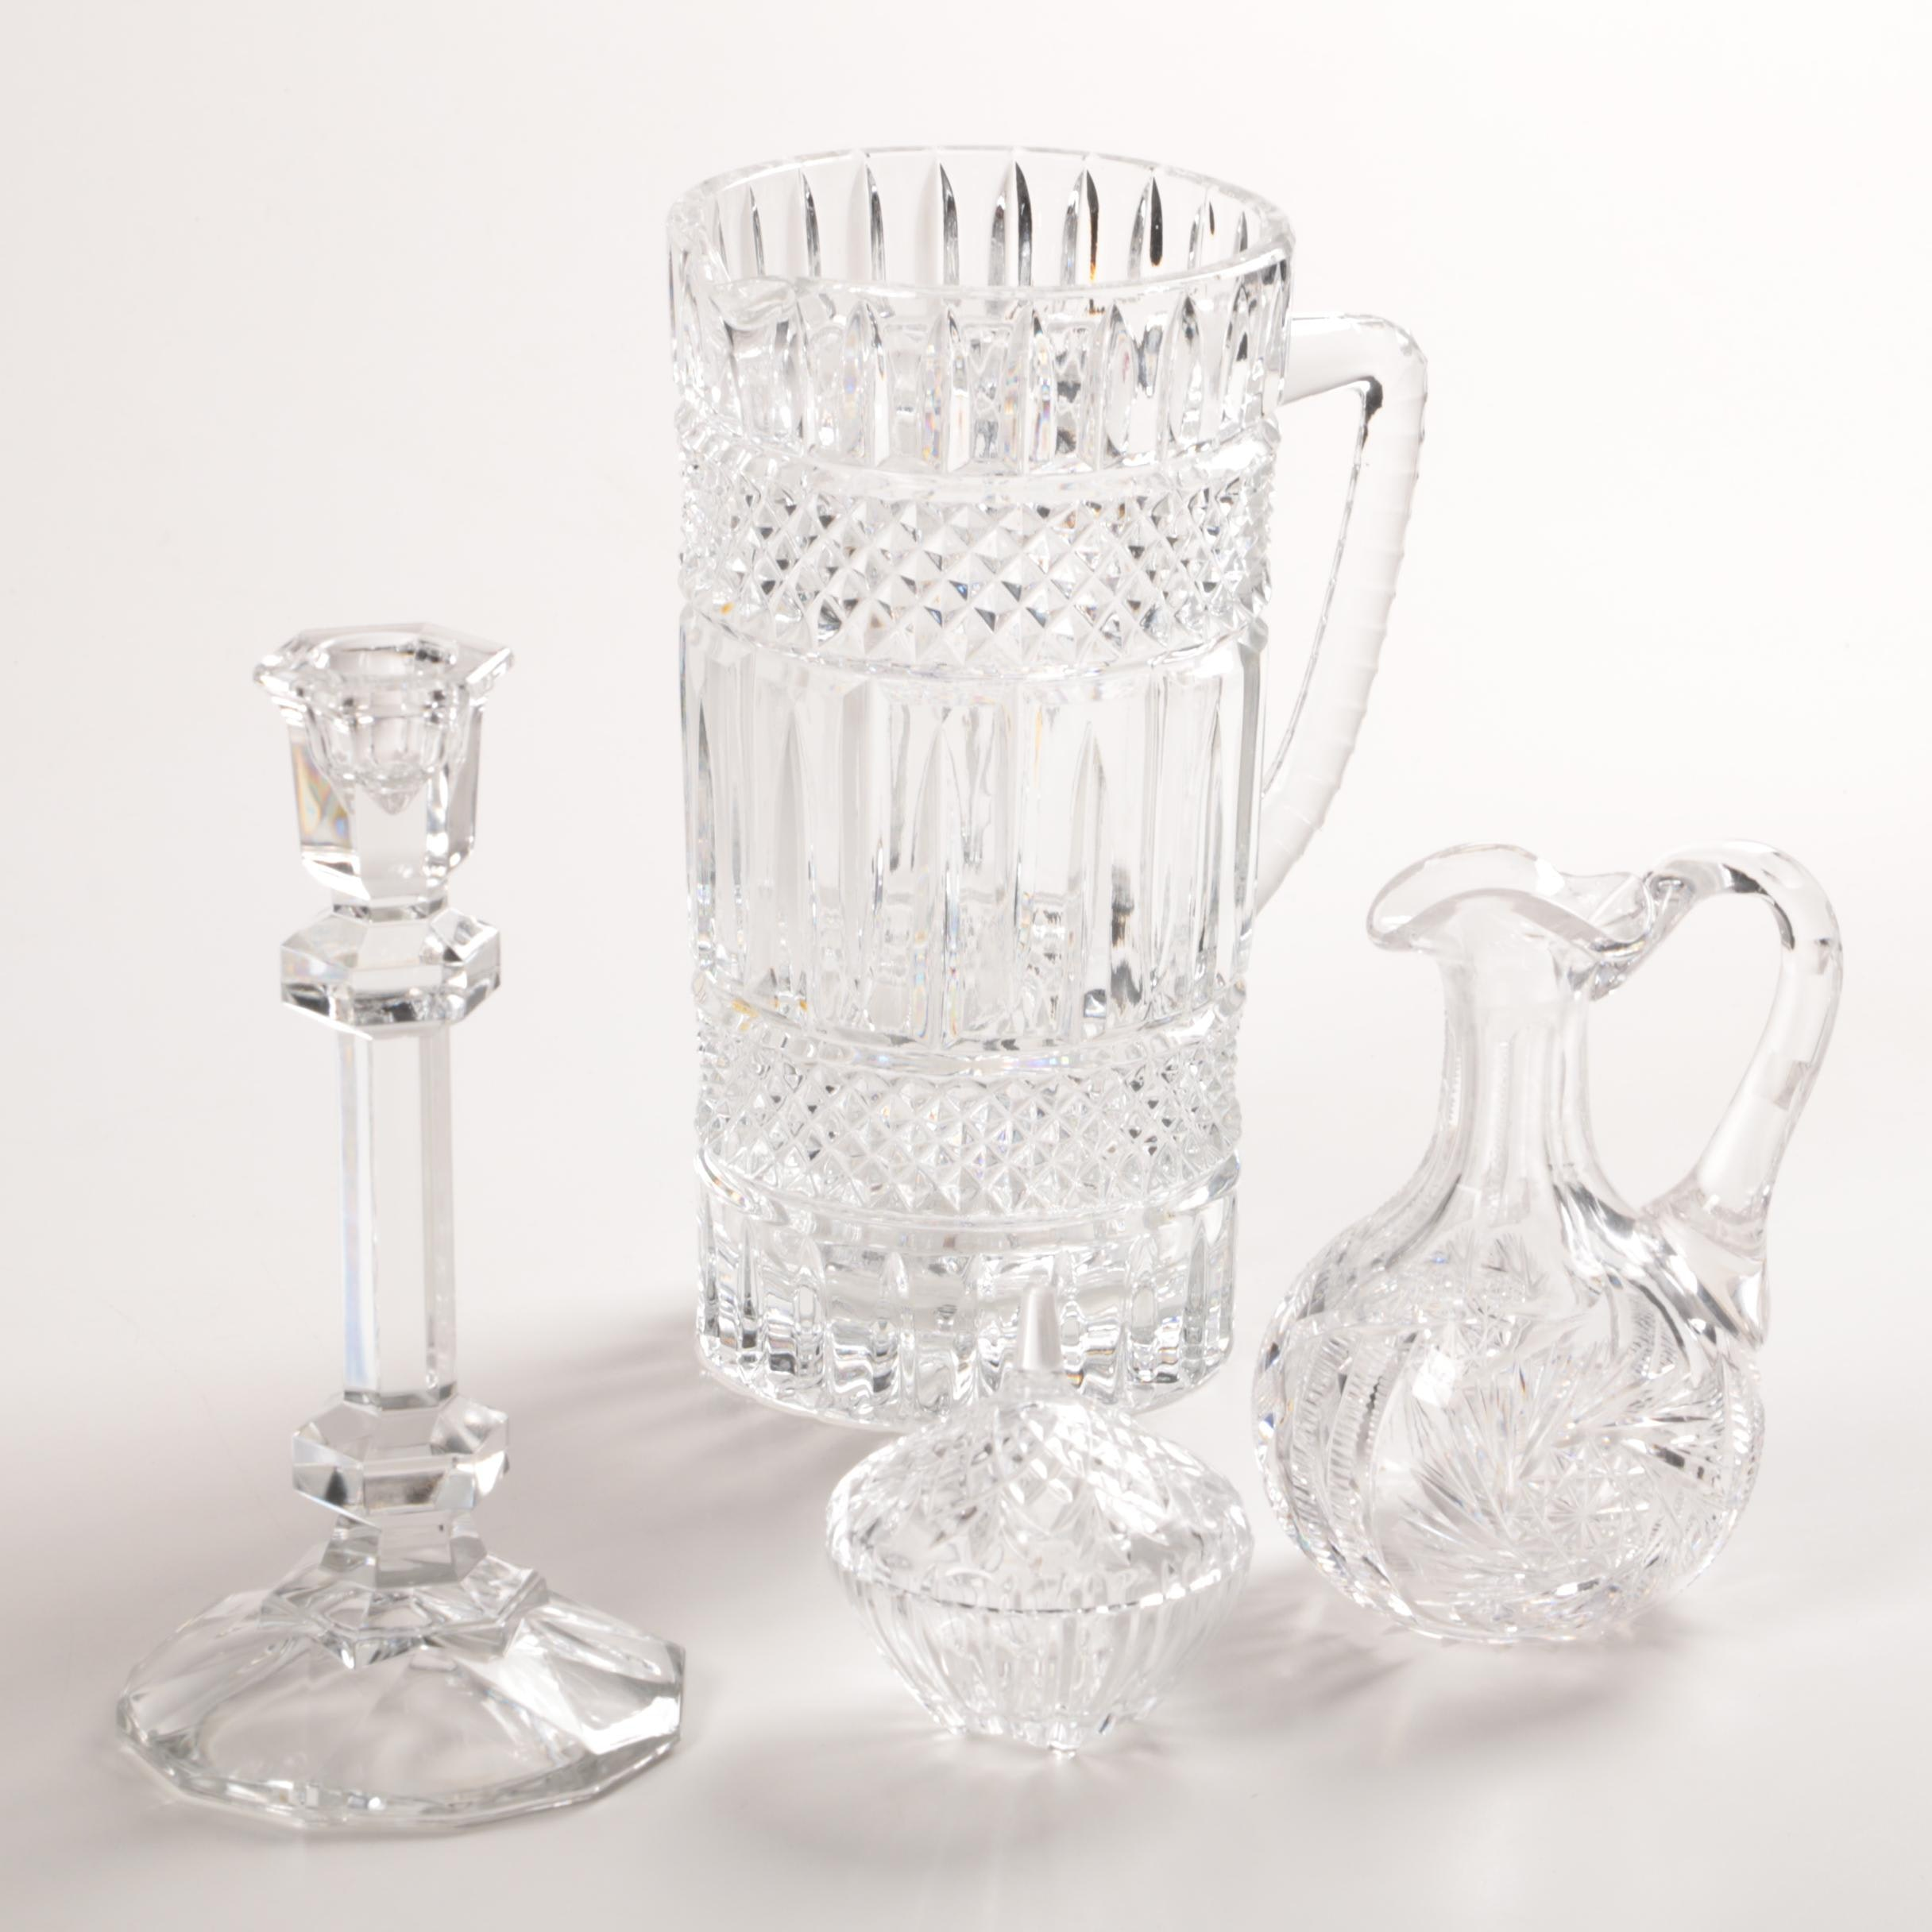 Crystal Serveware and Decor